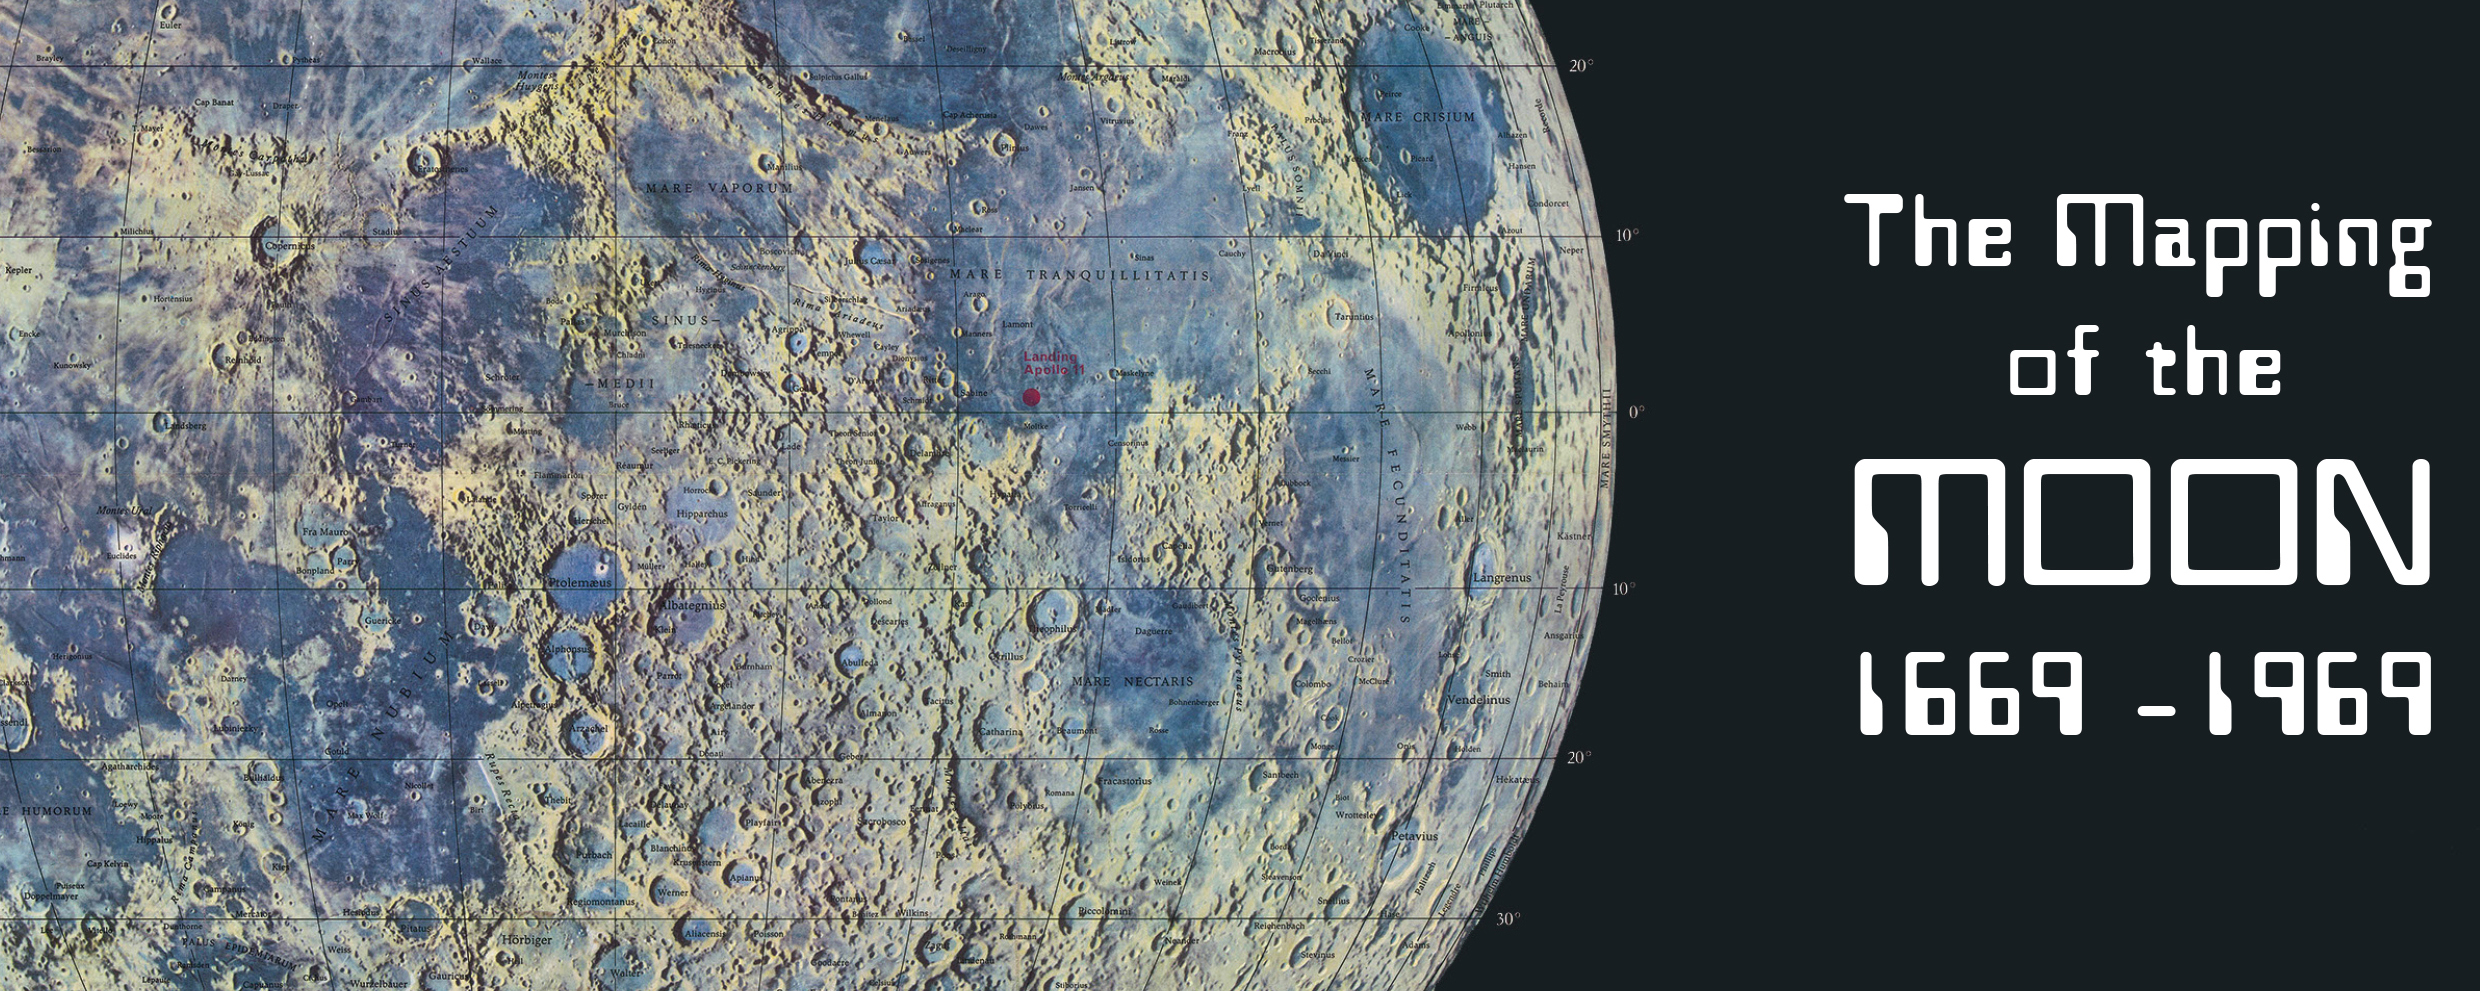 The Mapping of the Moon: 1669 – 1969 | The Map House